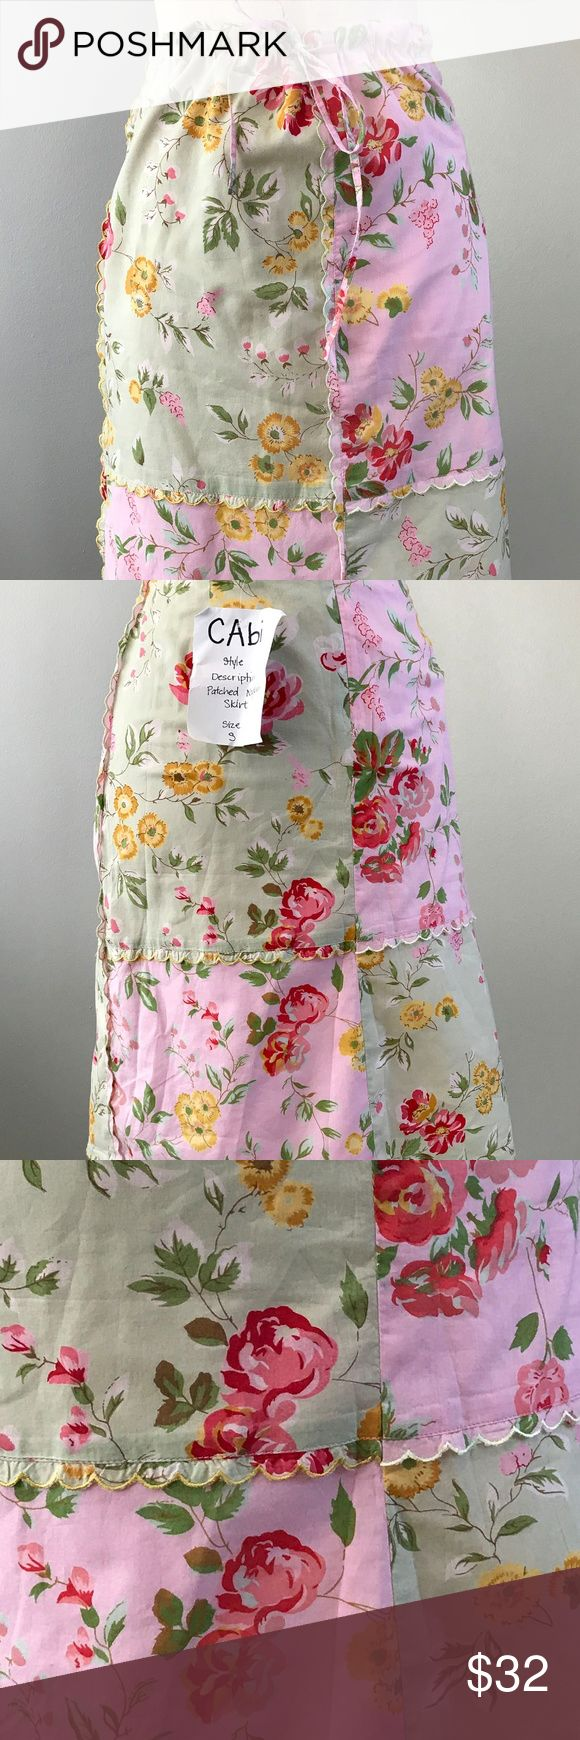 Cabi Hankerchief Patchwork Cotton Skirt Small Cabi Hankerchief Patchwork Cotton Skirt Small Gorgeous skirt with a patchwork of pink and green prints and a sweet scalloped edges. The skirt looks brand new. It has a front tie for better fit plus a back invisible zipper. Nicley lined. Waist: 28 inches  Hips: 36 inches flat  Length: 22.5 inches CAbi Skirts Midi